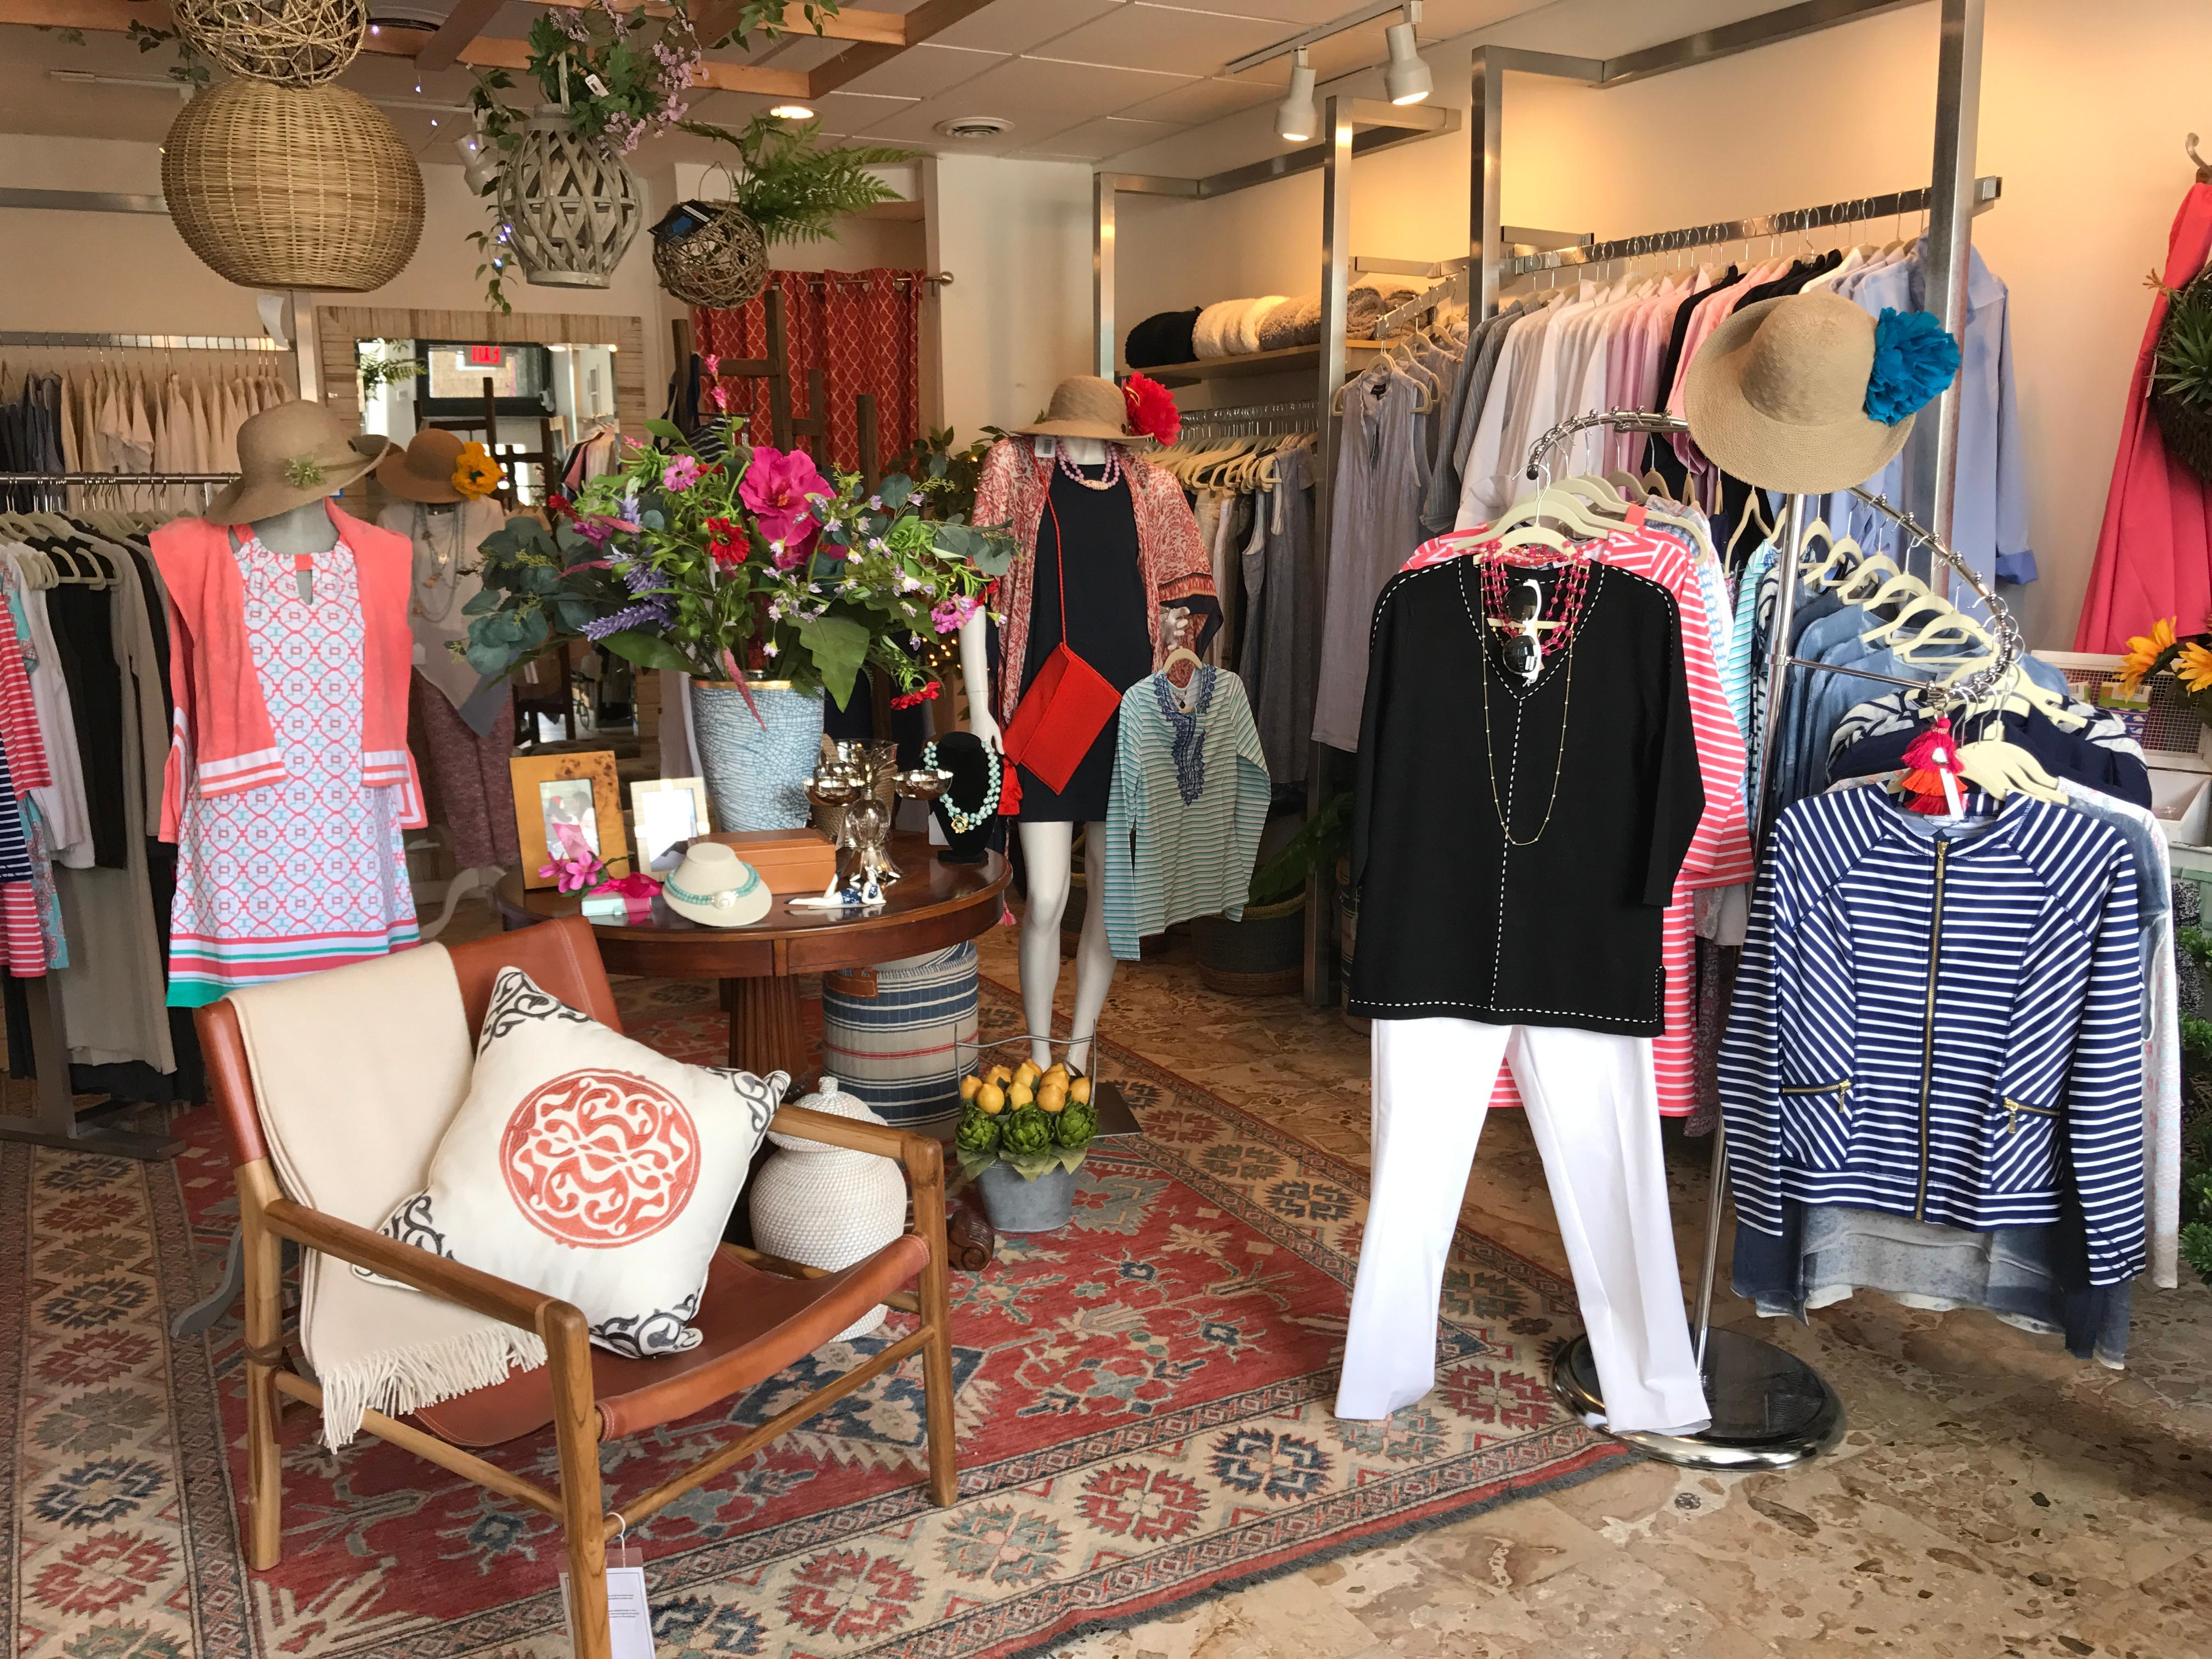 If you're looking to give your credit card a workout, check out some of the town's best shops, including new clothing and home goods boutique Alice and Laila. (Image: Courtesy Alice and Laila)